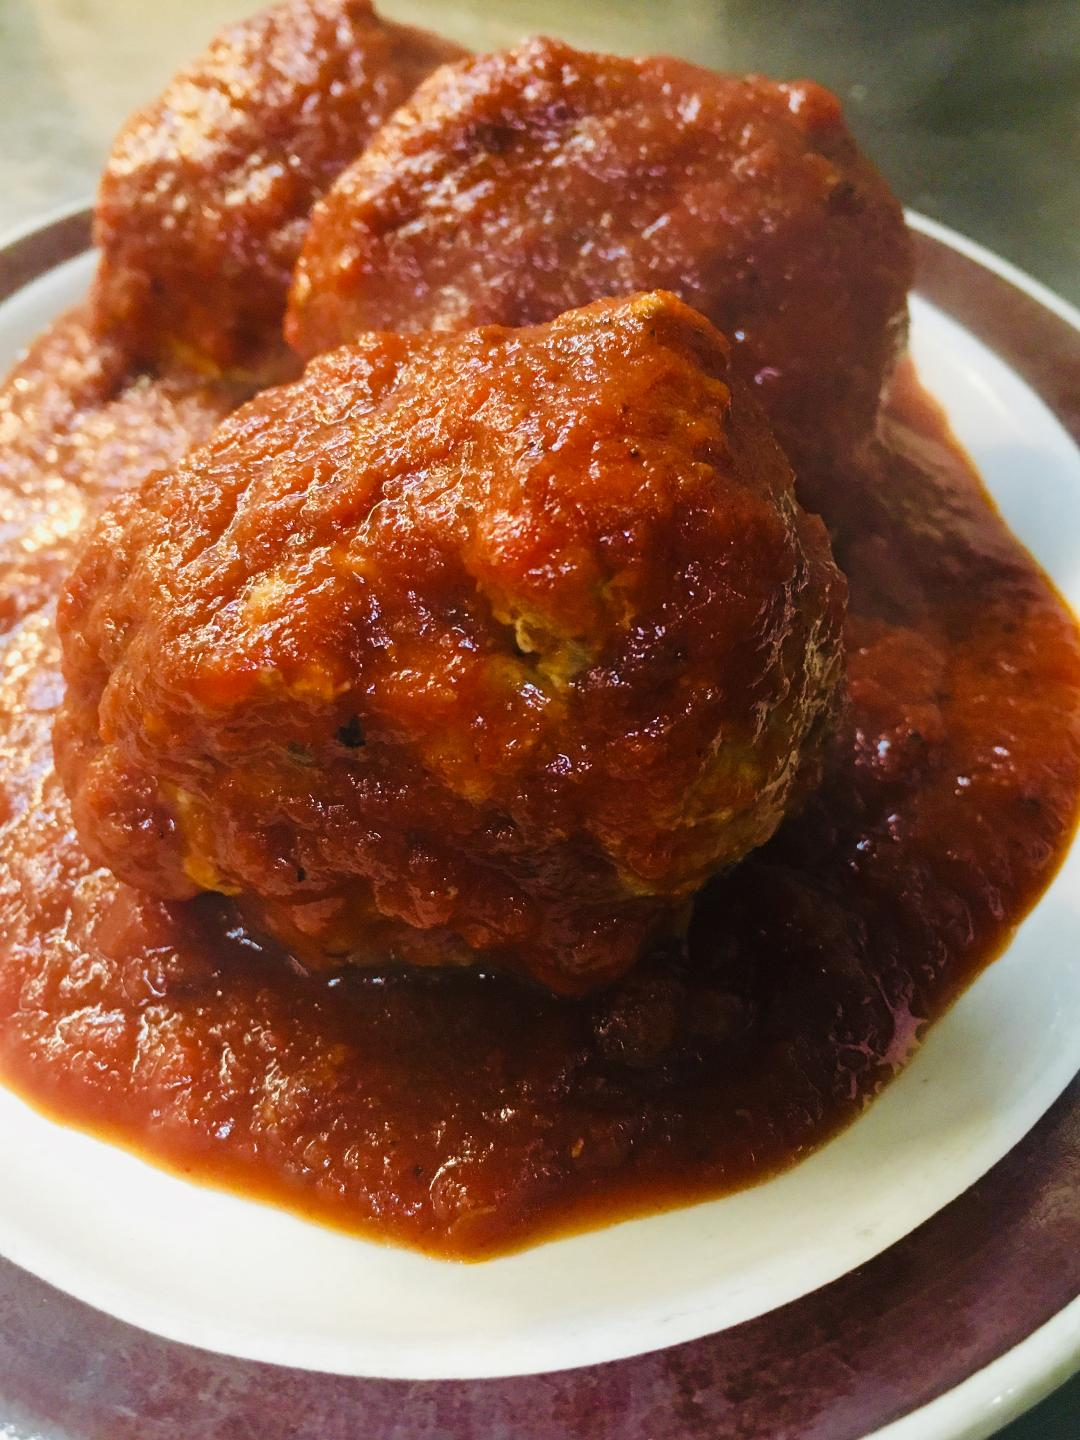 Meatballs on a plate covered in tomato sauce